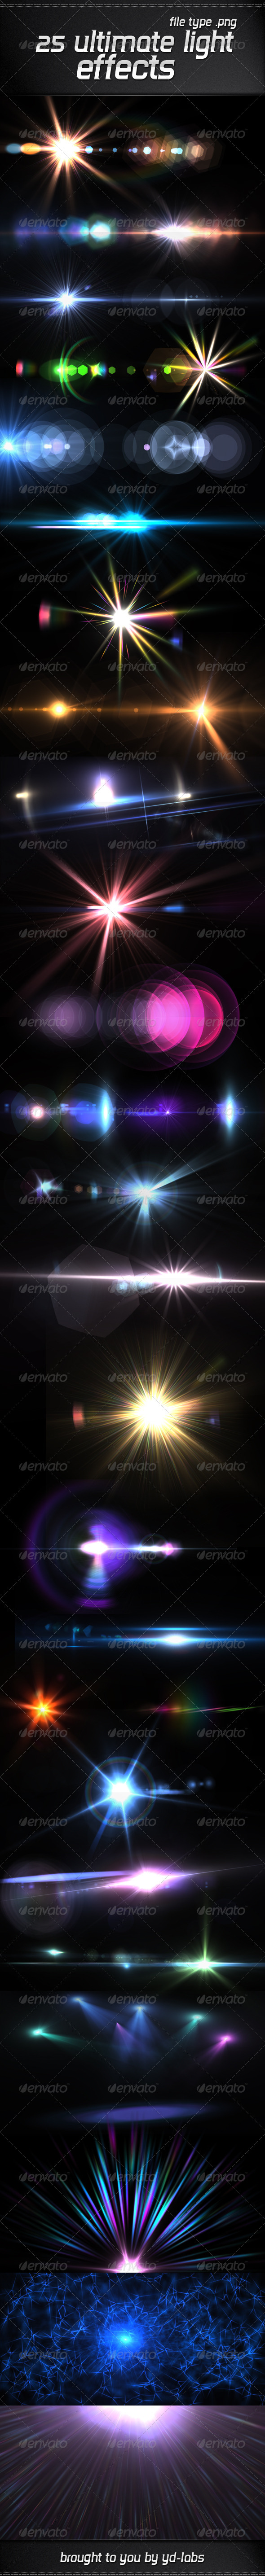 25 Ultimate Light Effects Volume 4 by ydlabs | GraphicRiver